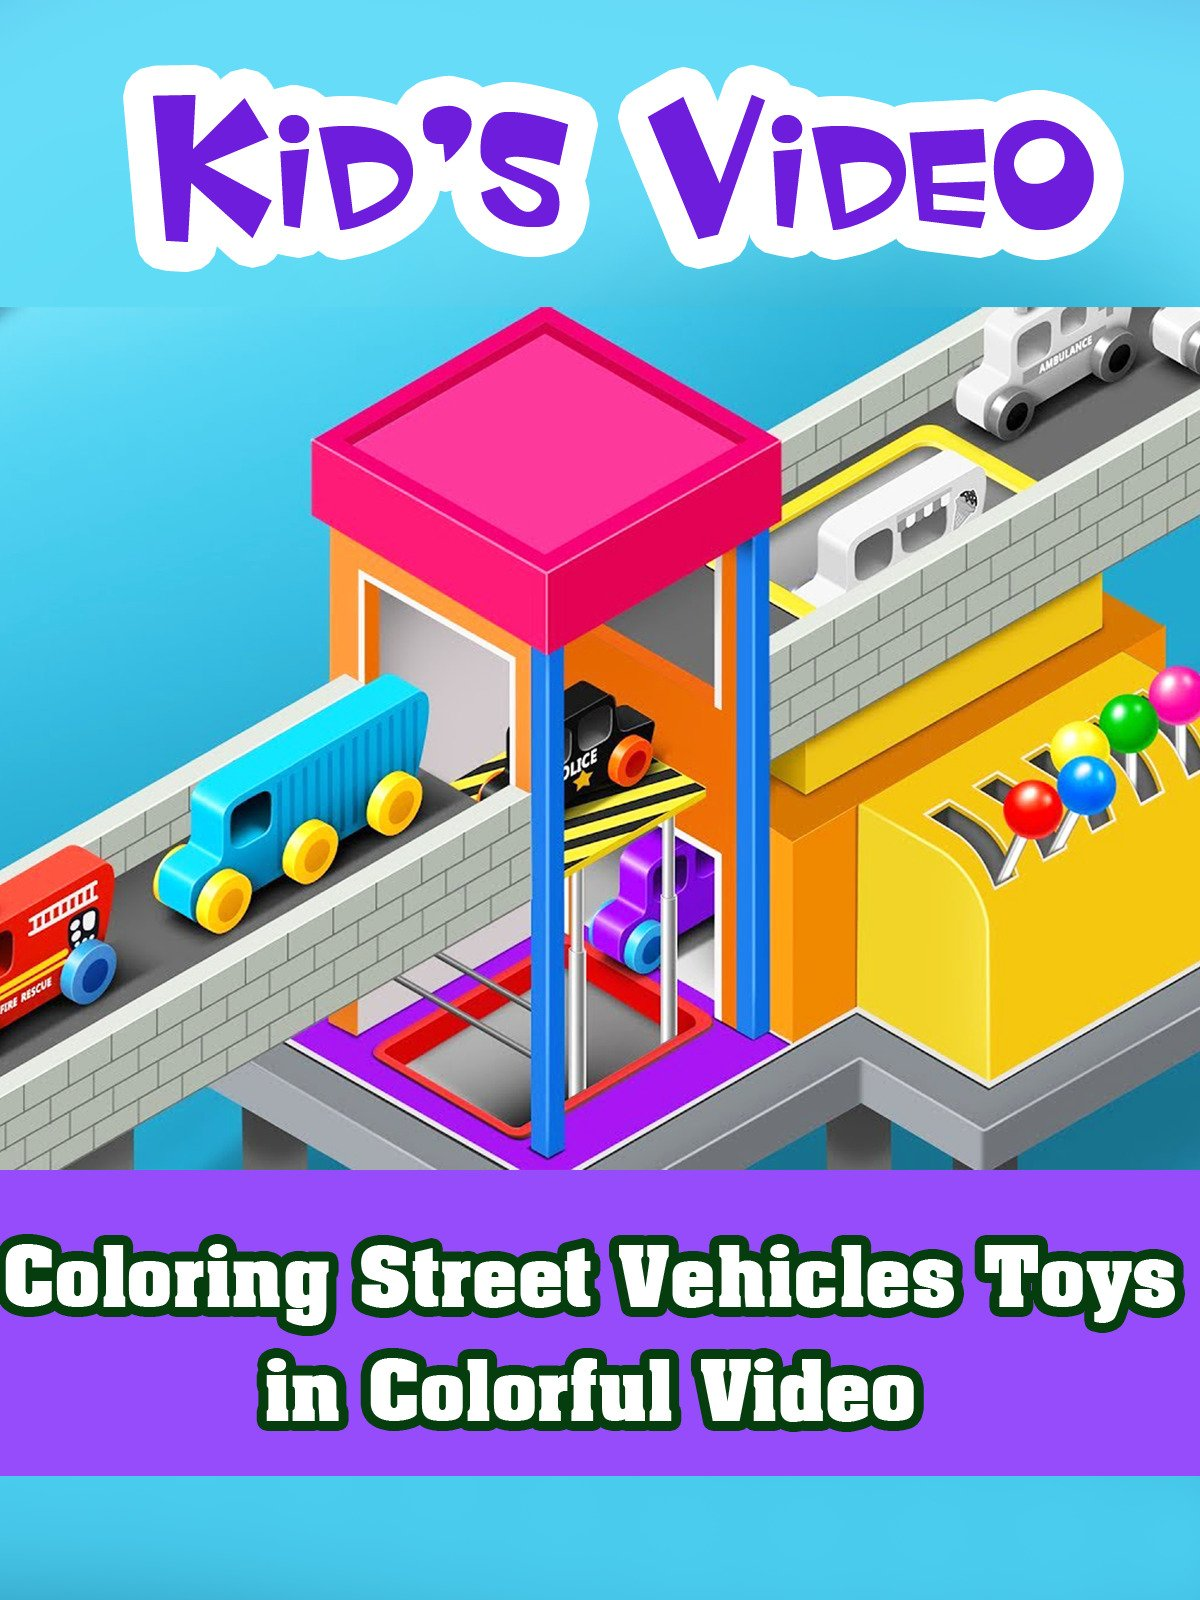 Coloring Street Vehicles Toys in Colorful Video